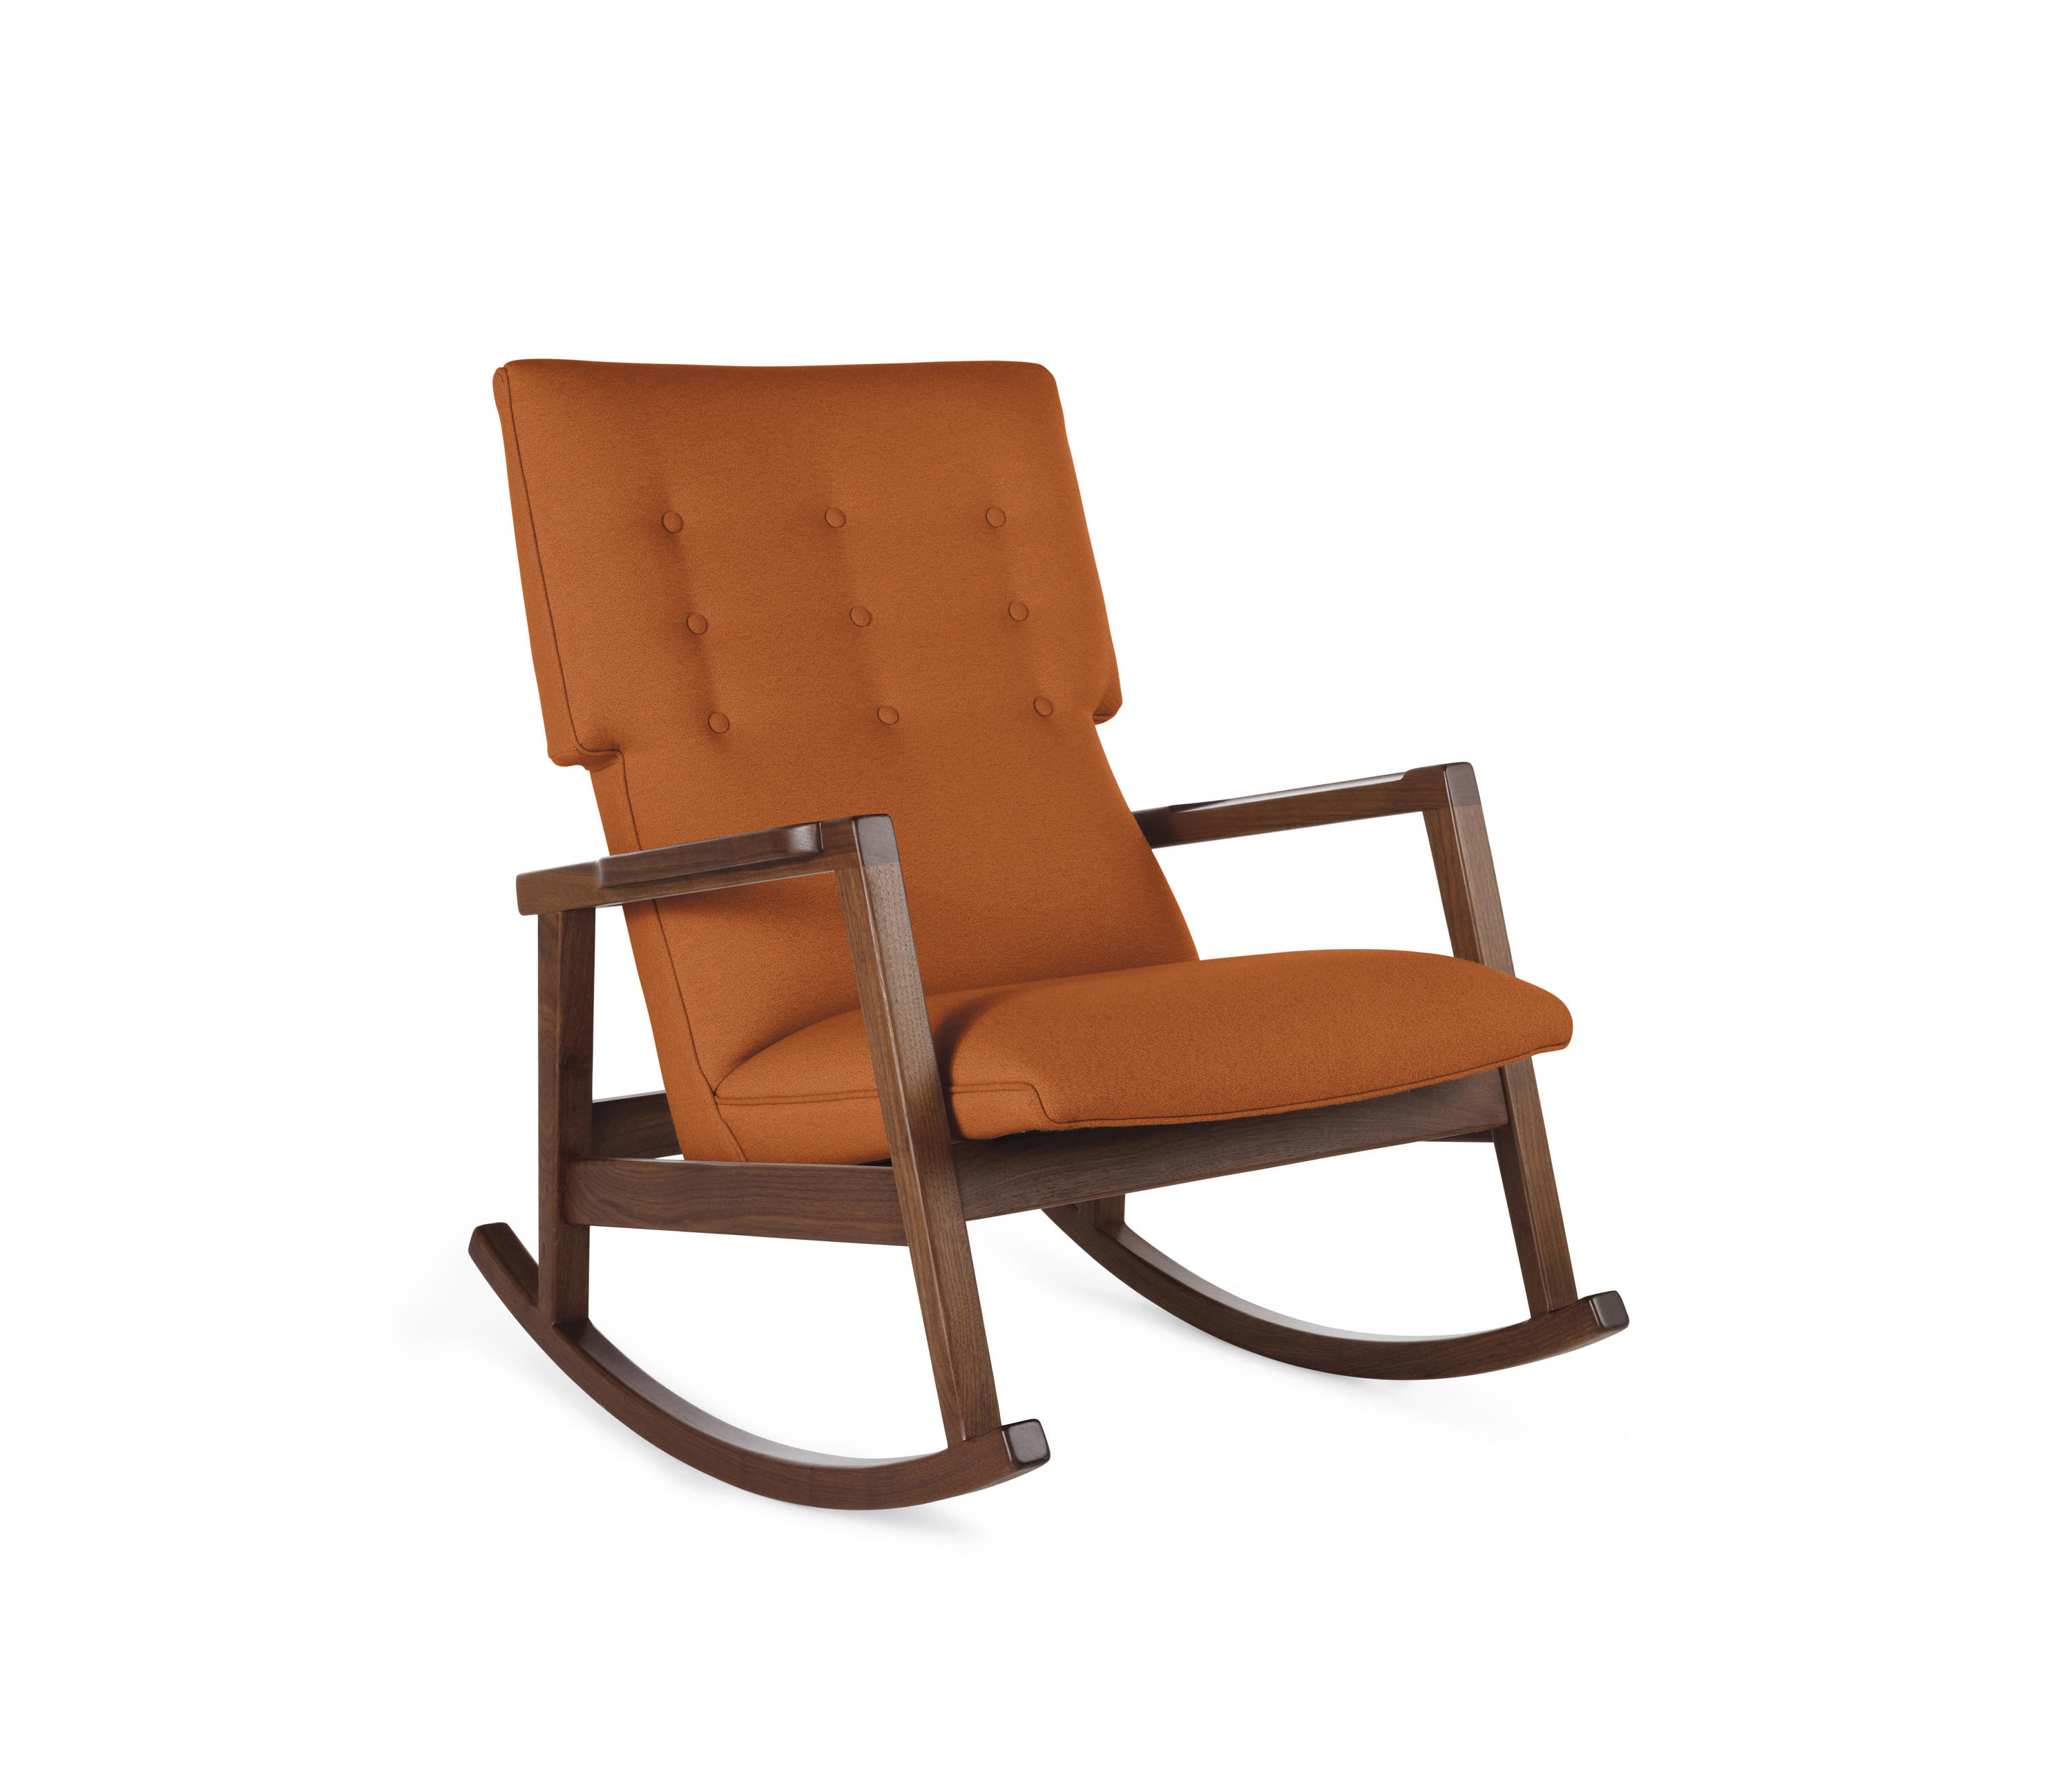 Chairs design within reach -  Risom Rocker By Design Within Reach Armchairs